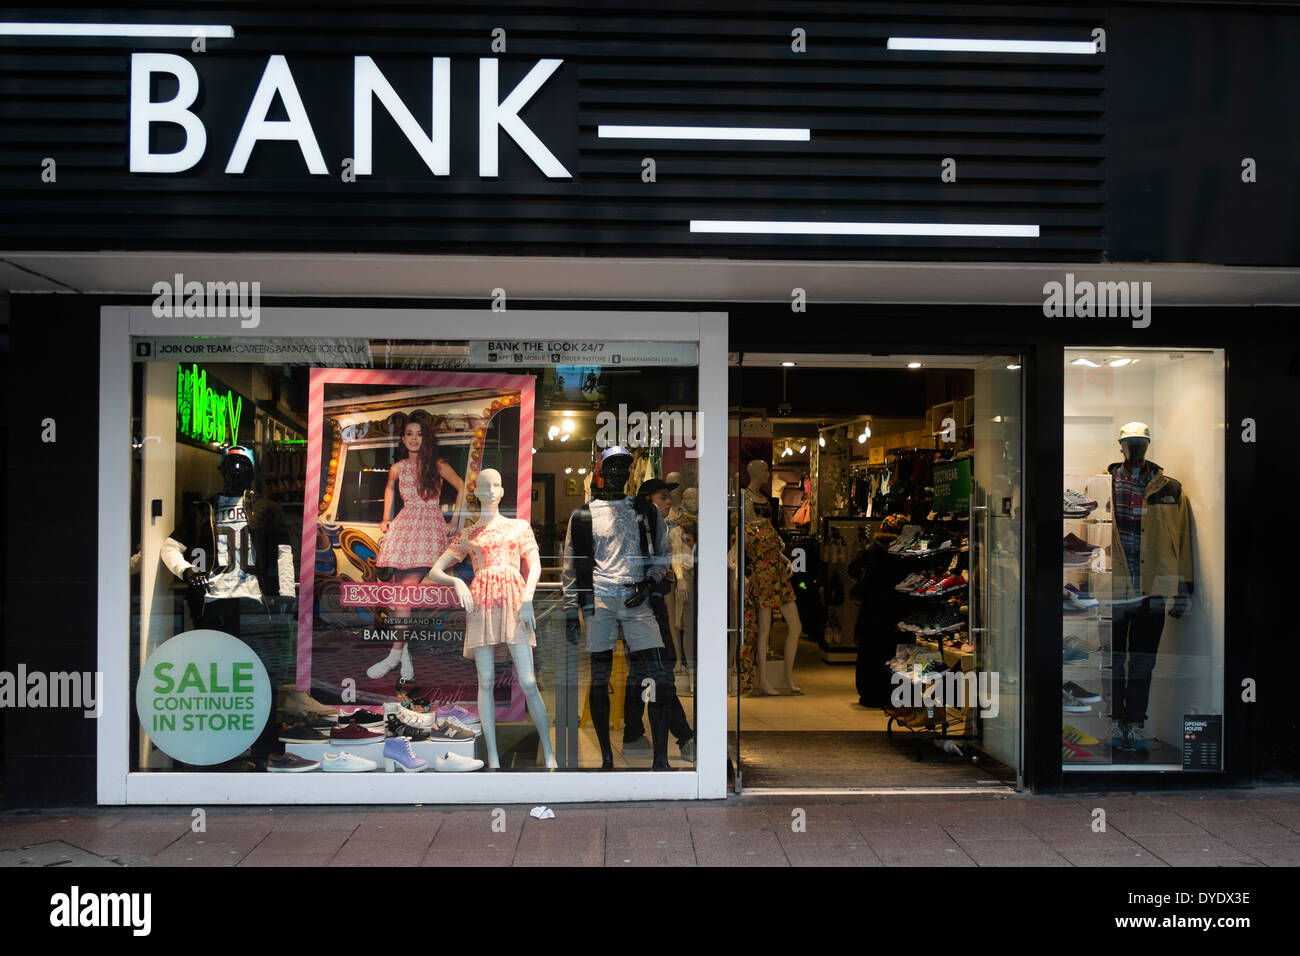 BANK Clothing Store Cardiff City Centre March 28 2014 Stock Photo Royalty Free Image 68532674 ...